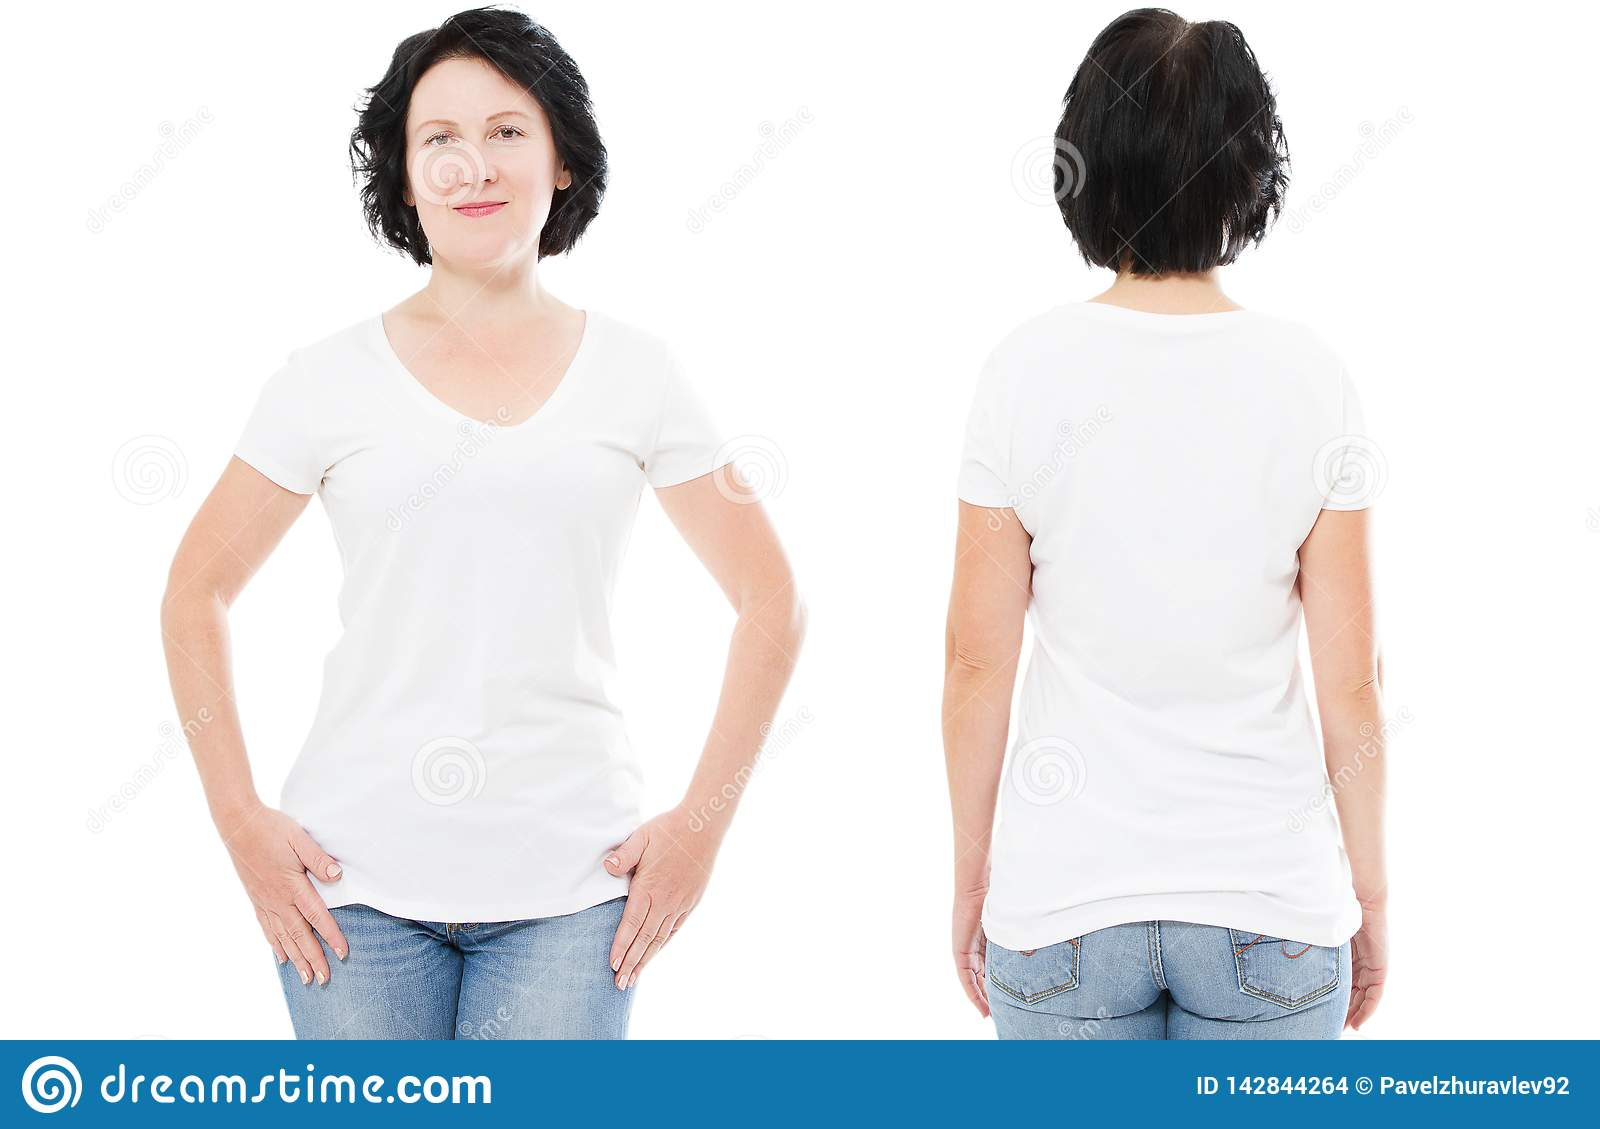 T-shirt design and people concept - close up of middle-aged woman in blank white t-shirt, shirt front and rear isolated. Mock up